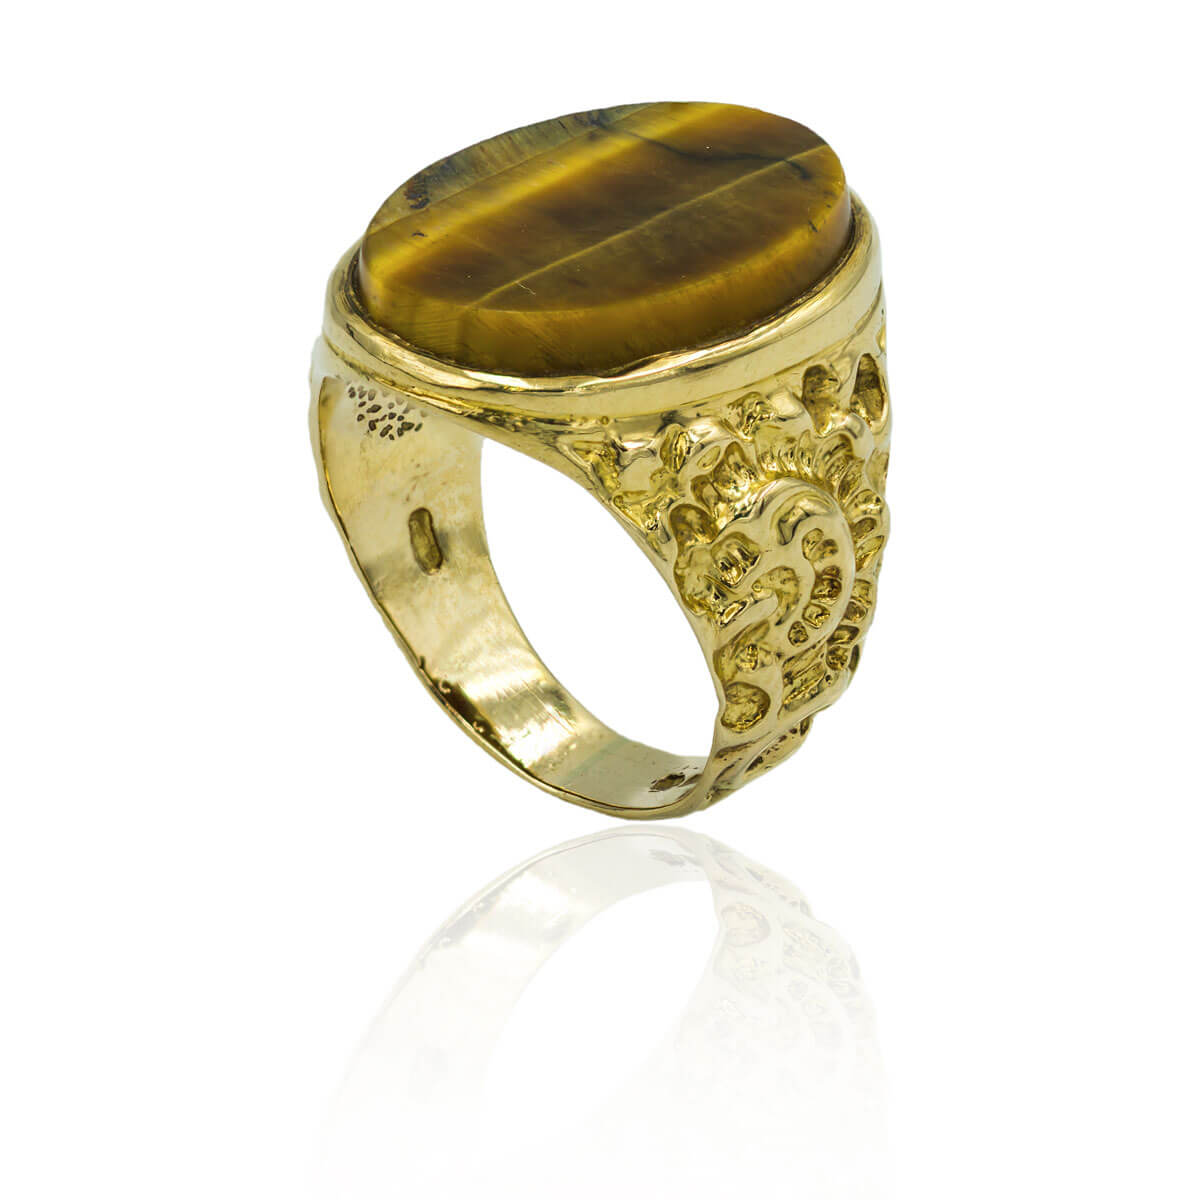 What is 9ct gold jewellery?